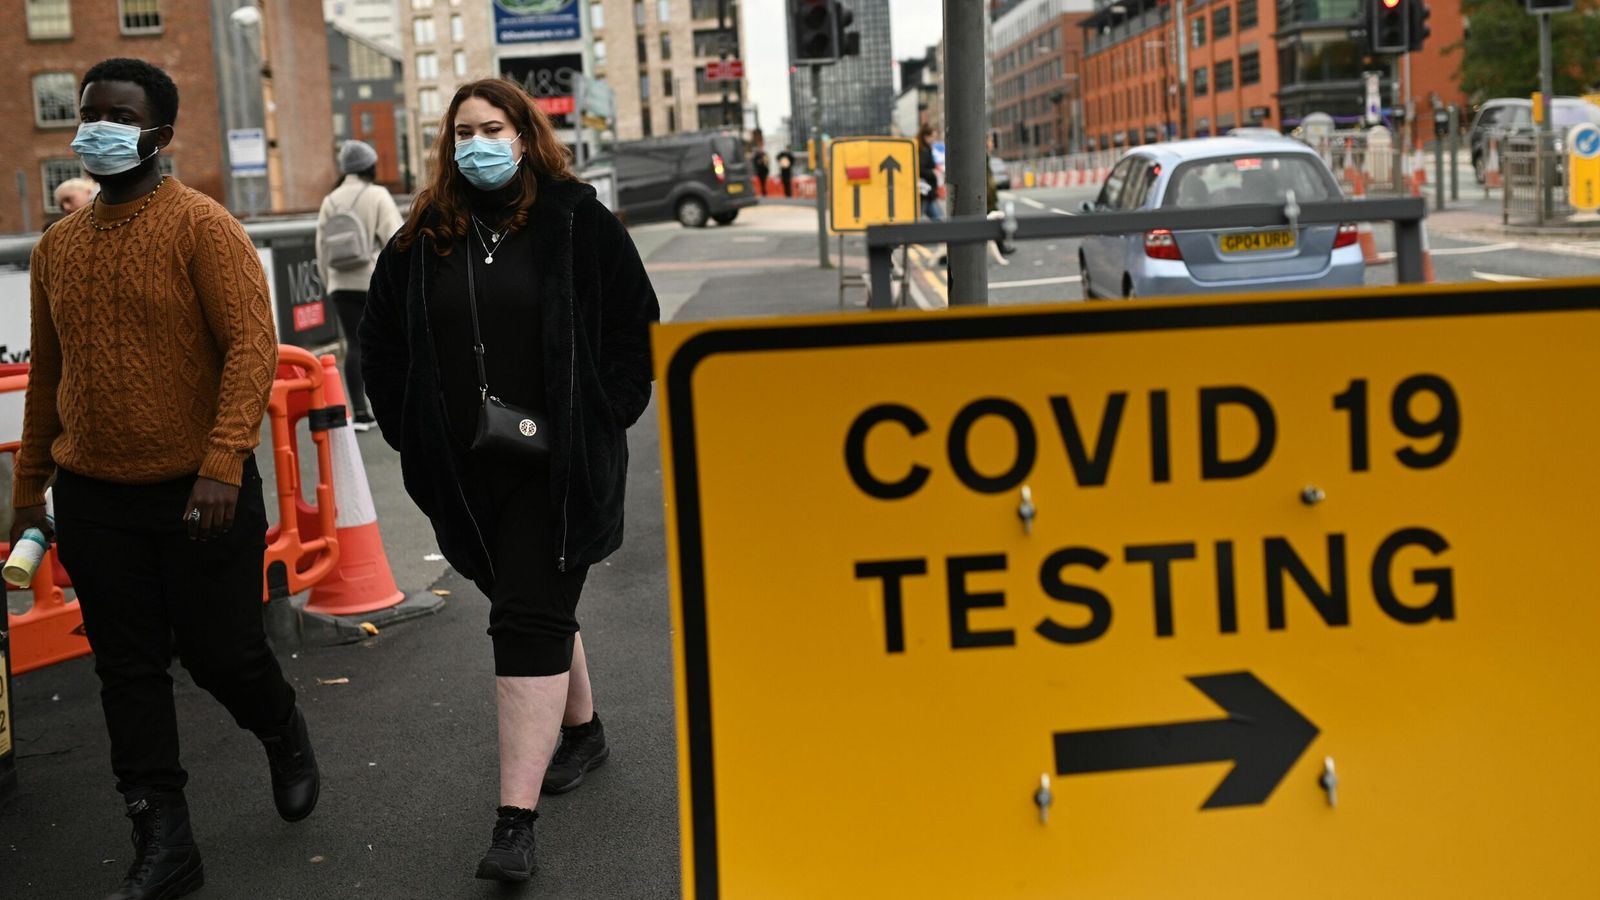 Coronavirus: UK posts highest daily COVID deaths since June and more than 21,000 new cases - Sky News